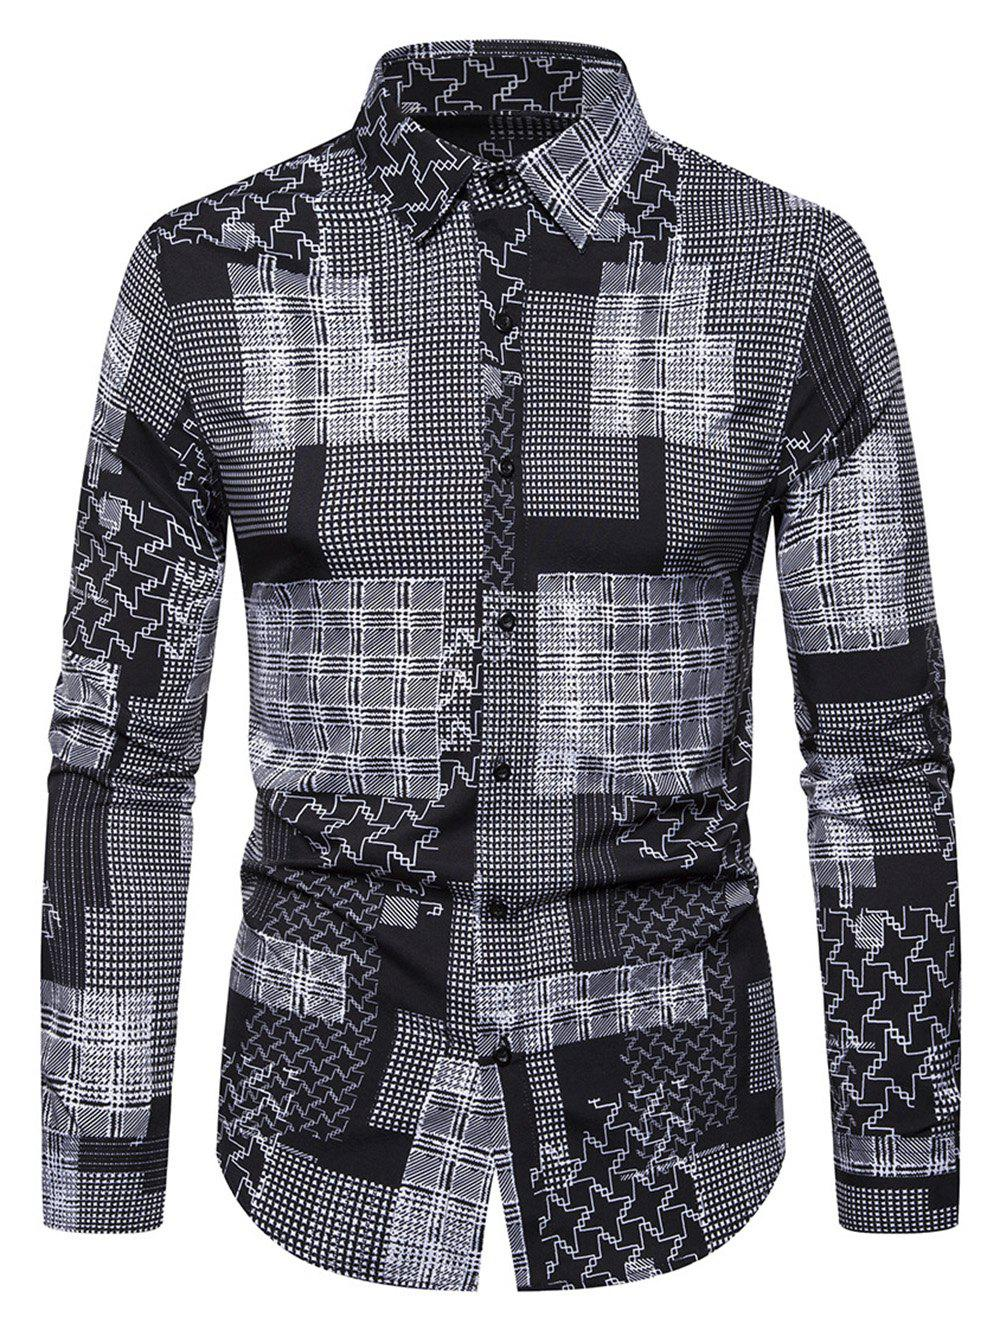 Patchworks Printed Casual Long-sleeved Shirt - BLACK 2XL